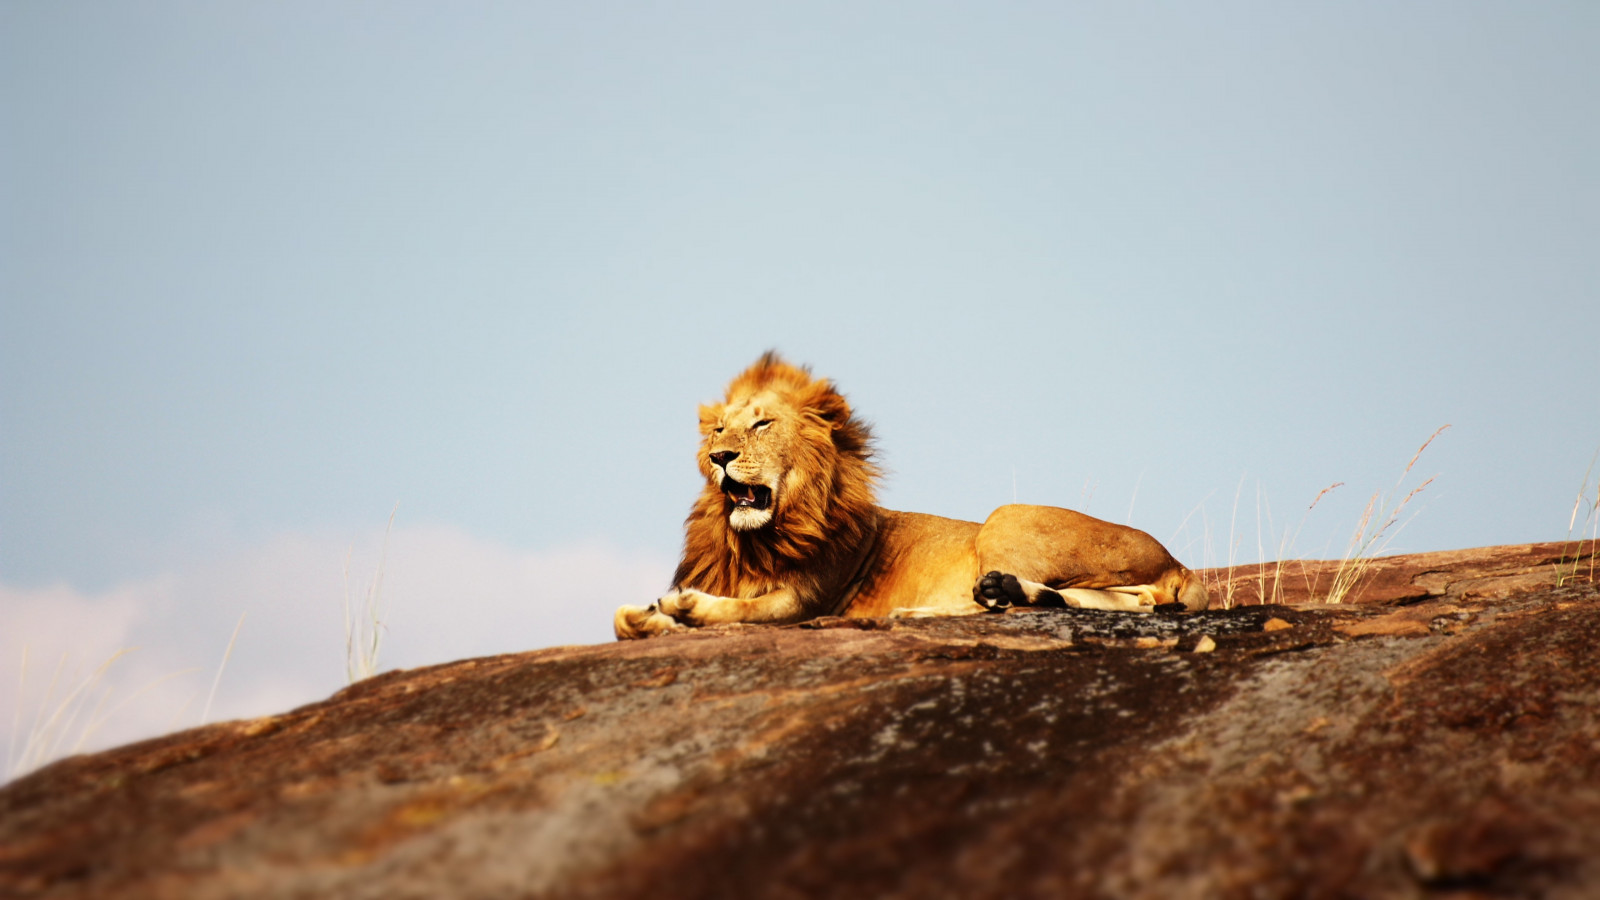 Lion in Serengeti National Park wallpaper 1600x900